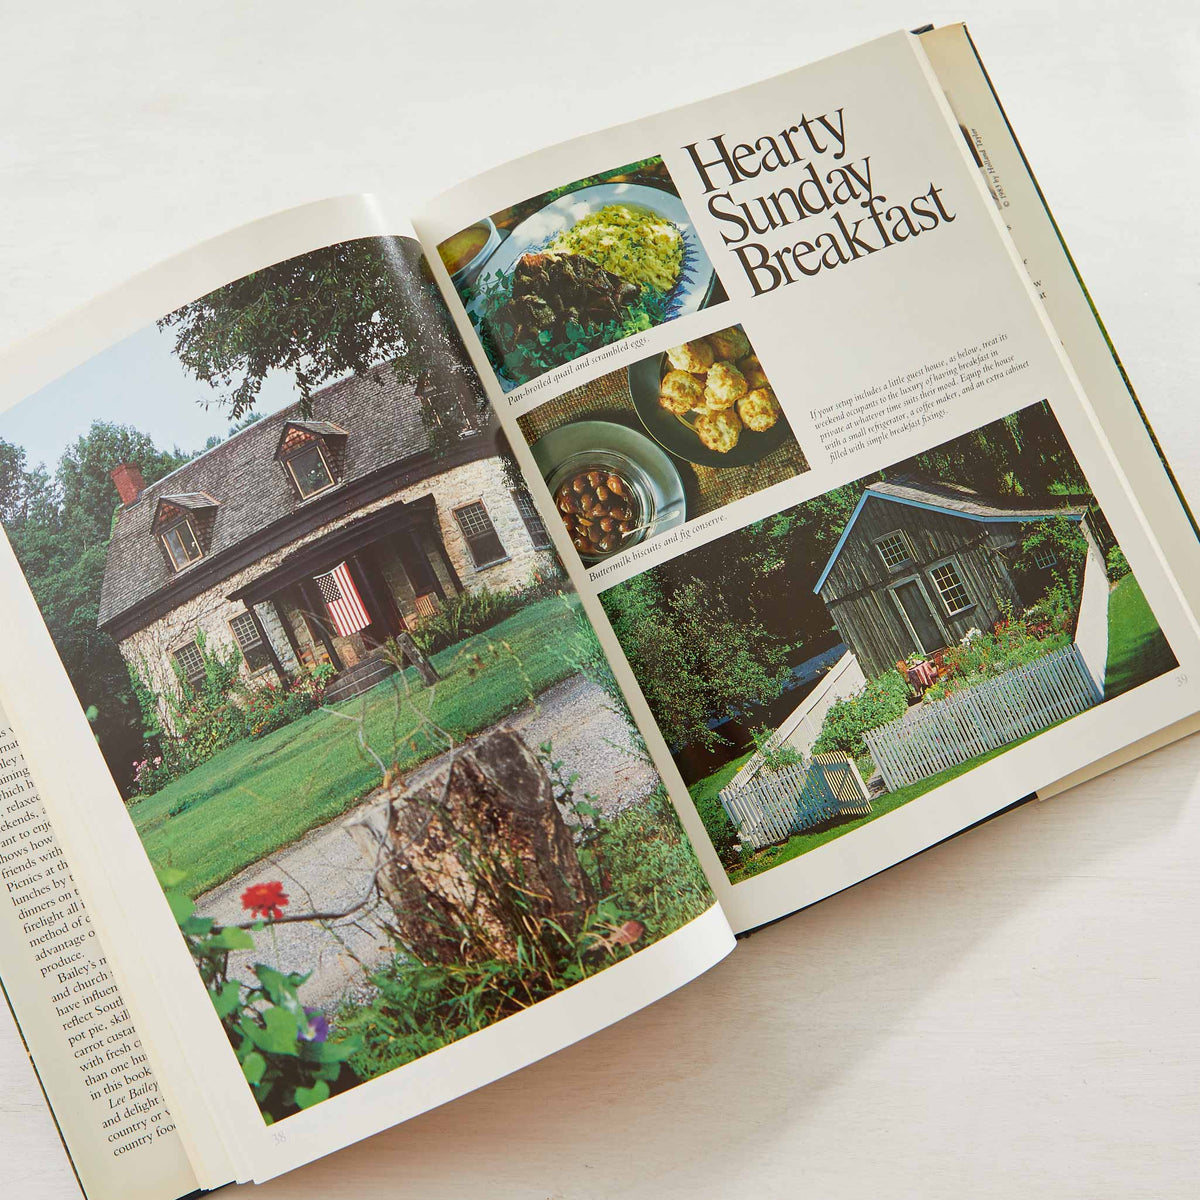 Lee Bailey's County Weekends. Best healthy breakfast cookbook. Over-served? Best hangover cookbook ever. Farm to table before it was a thing.